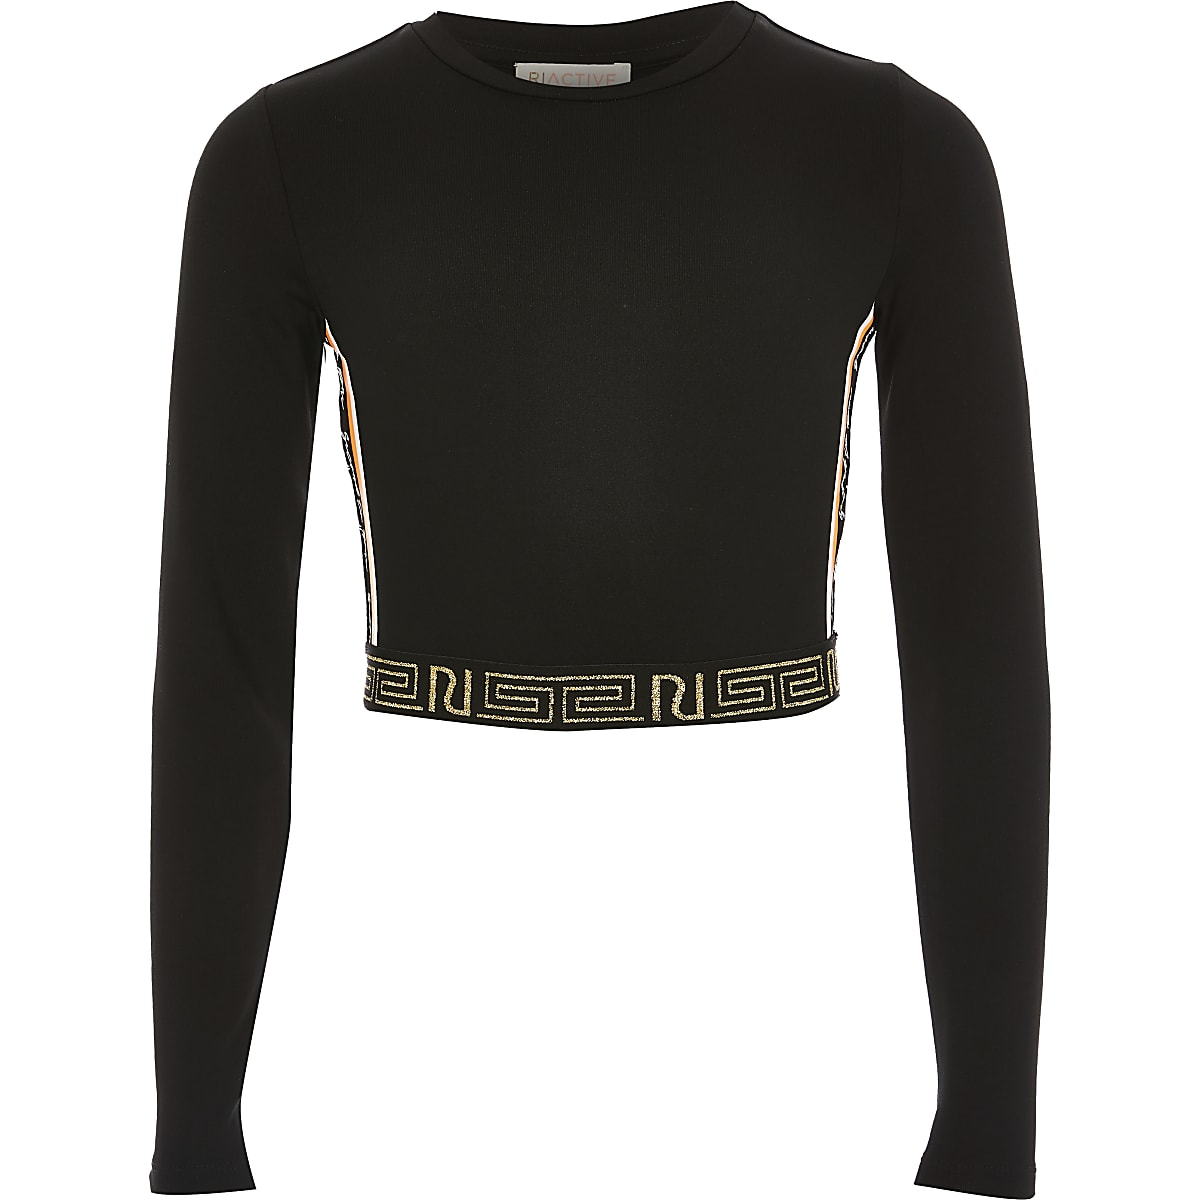 Girls RI Active black long sleeve crop top